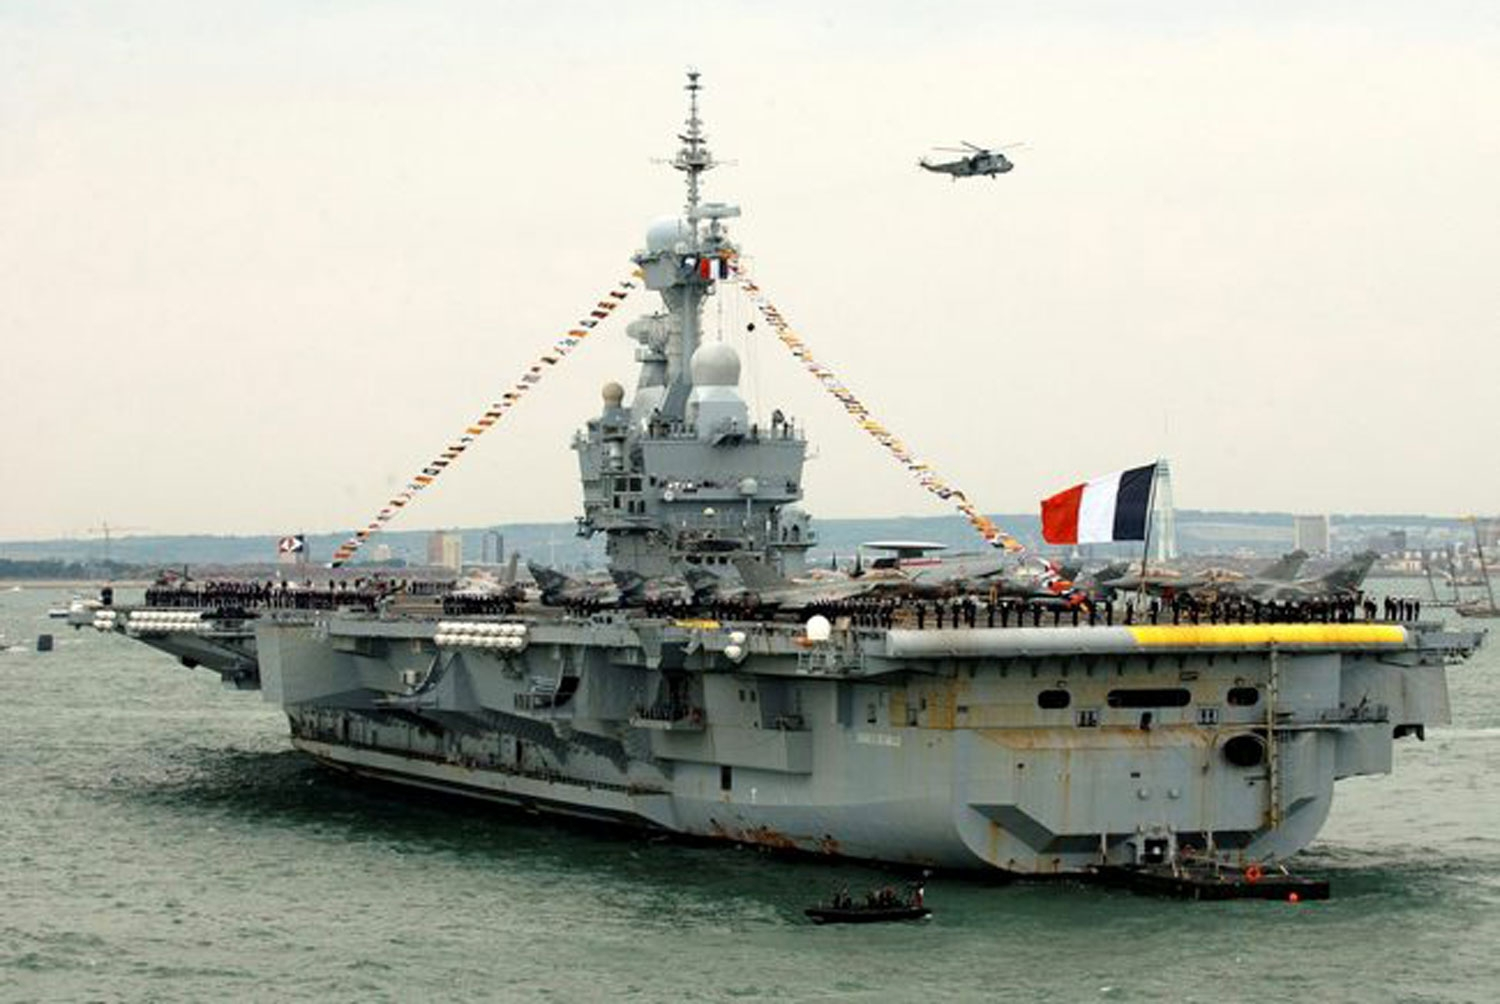 The carrier Charles de Gaulle of the French Navy took to the sea at the end of medium repair and modernization 72